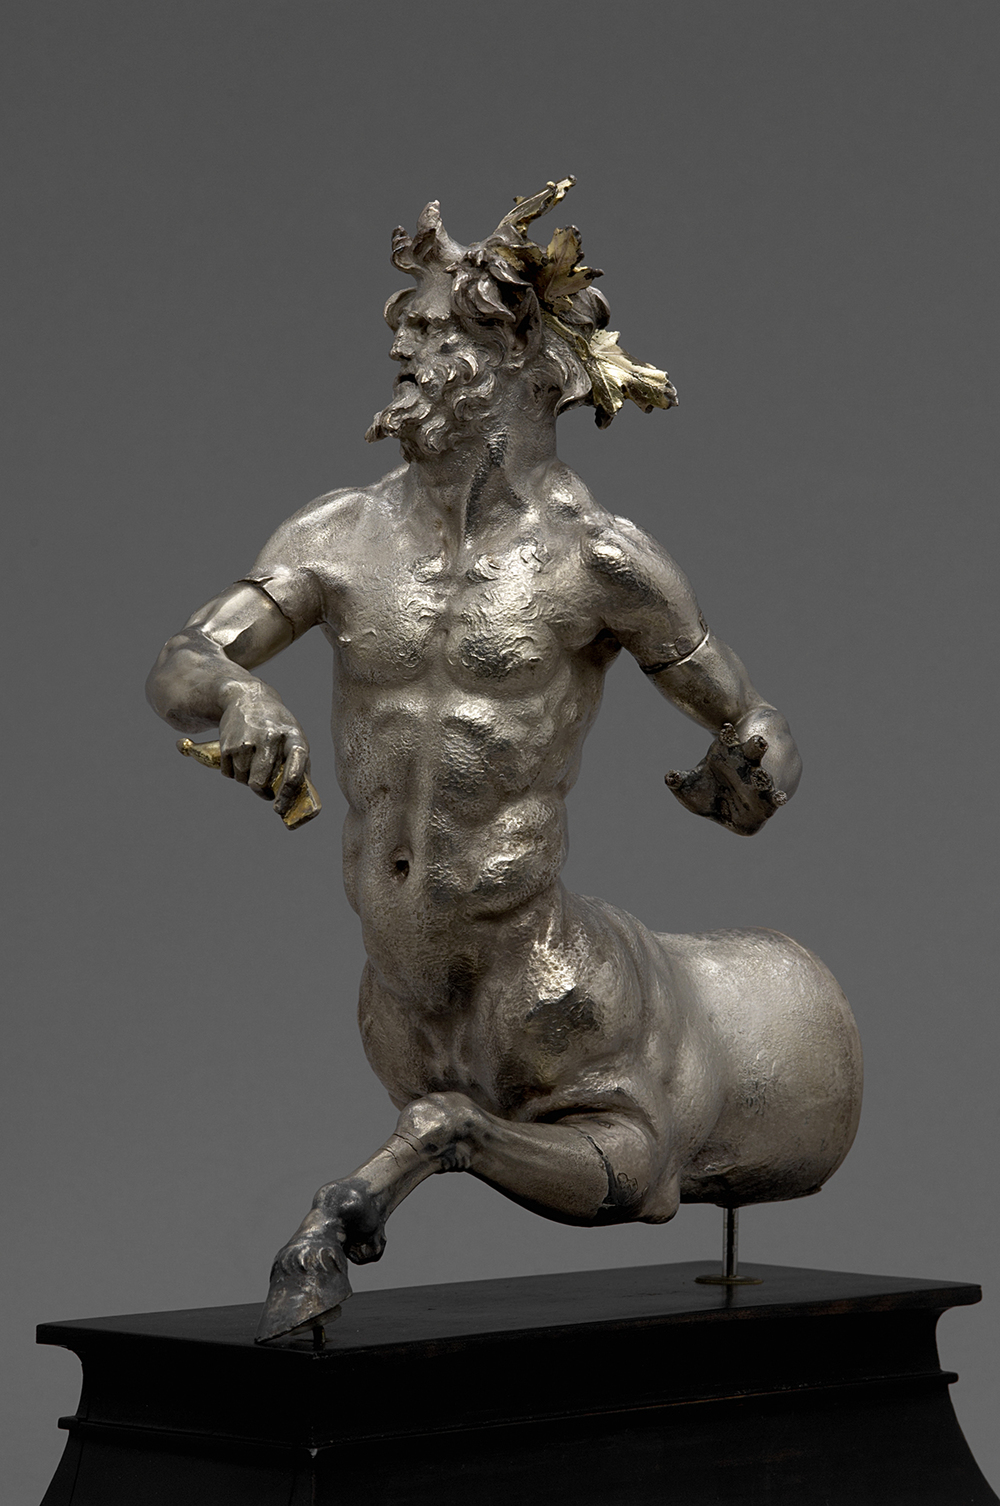 Rhyton (drinking vessel) in the form of a Centaur. Greek, Seleucid, Hellenistic period, ca. 160 B.C.E. Silver with gilding. H. 22 cm. Antikensammlung, Kunsthistorisches Museum, Vienna (VIIa 49).